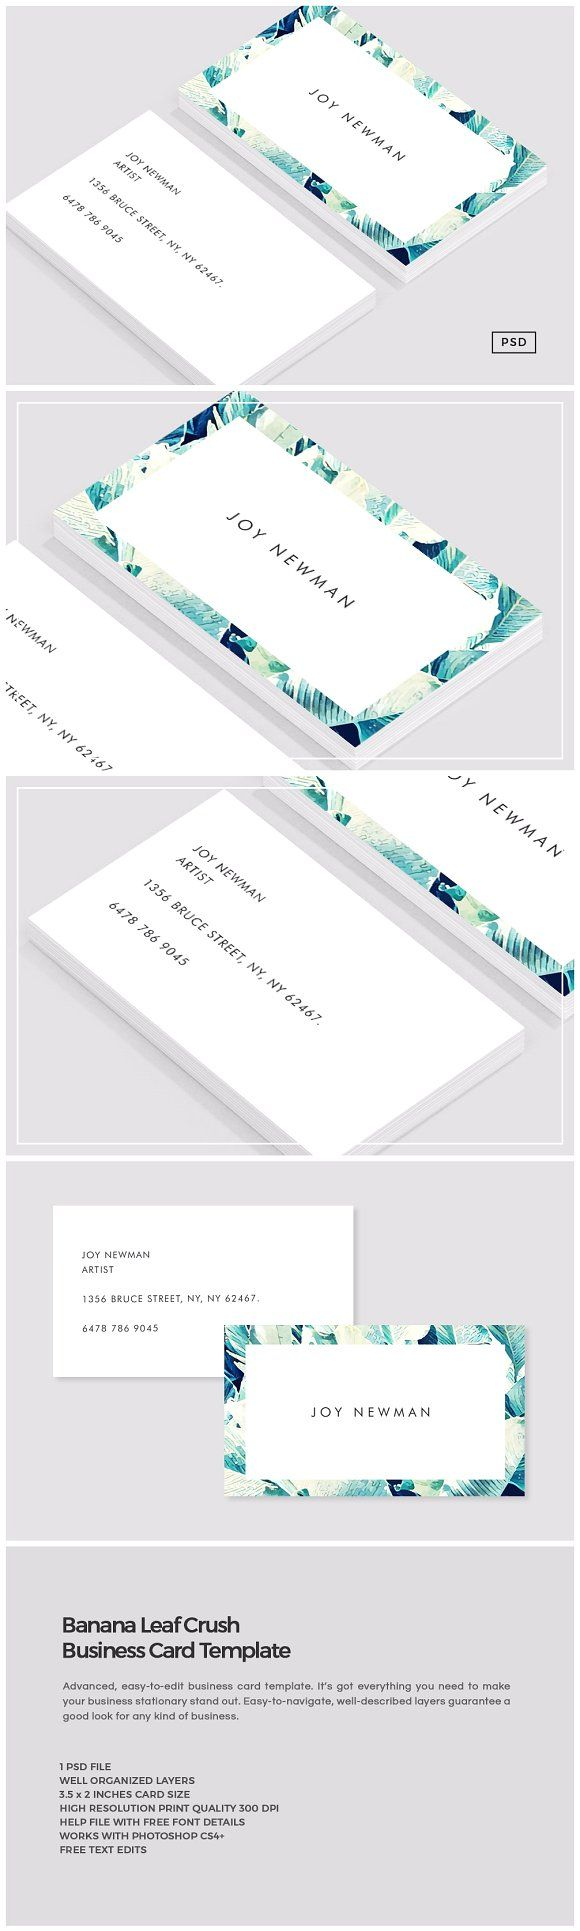 Banana Leaf Crush Business Card by The Design Label on @creativemarket